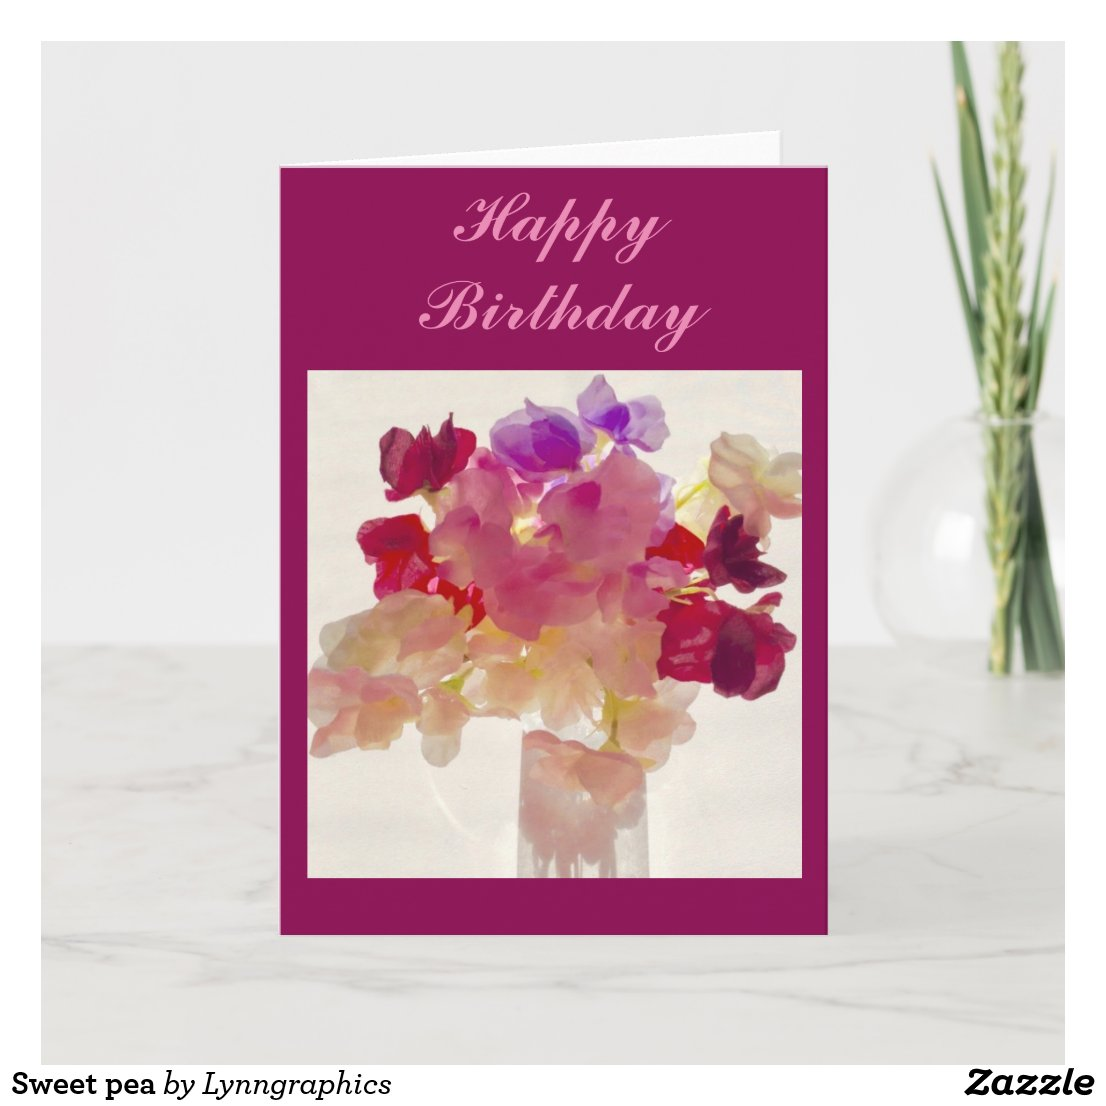 Sweet pea card